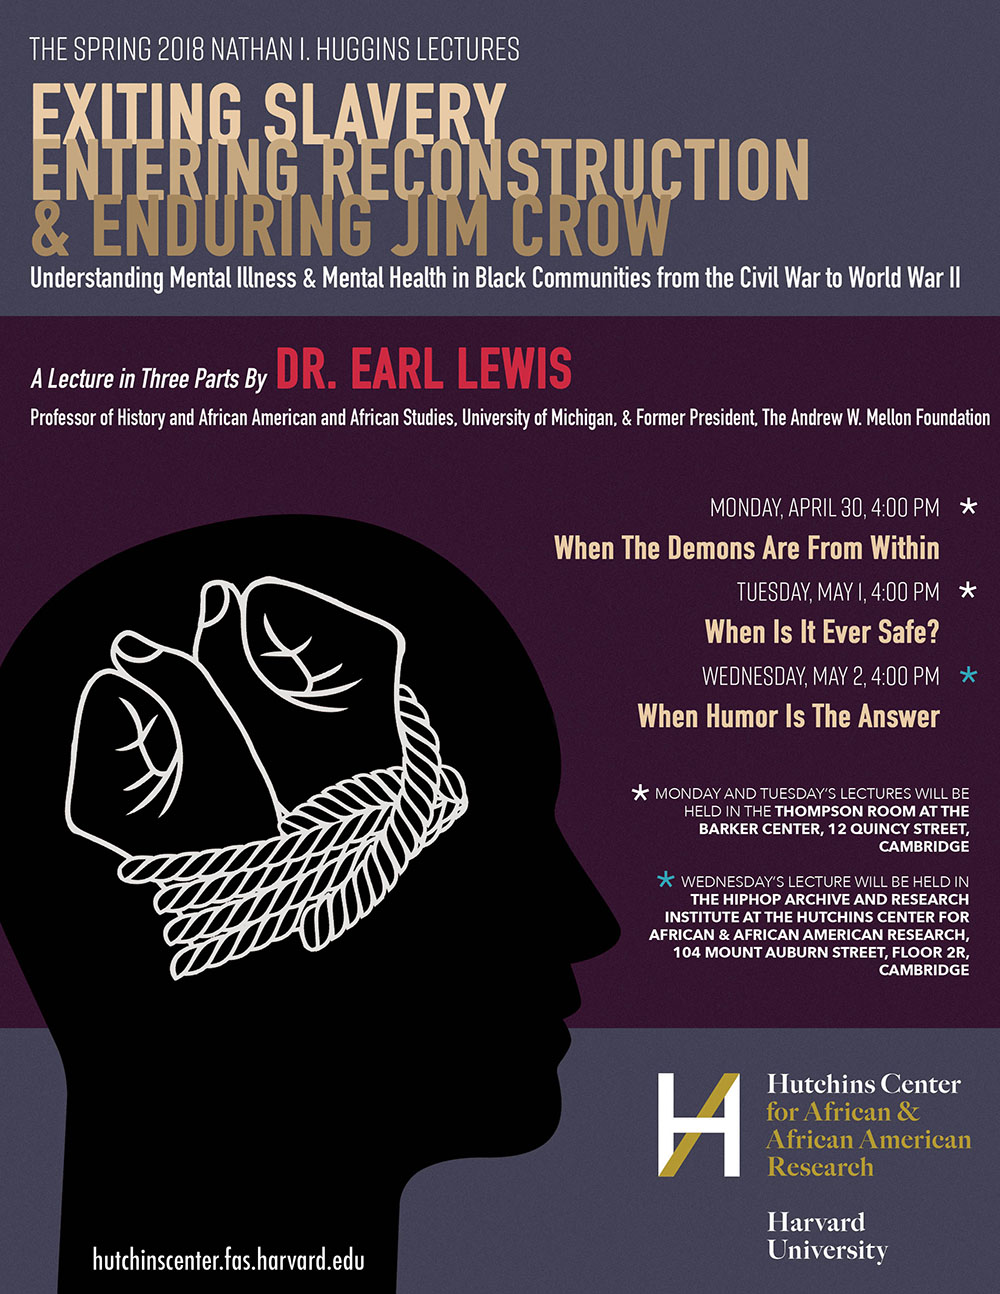 Exiting Slavery Entering Reconstruction And Enduring Jim Crow